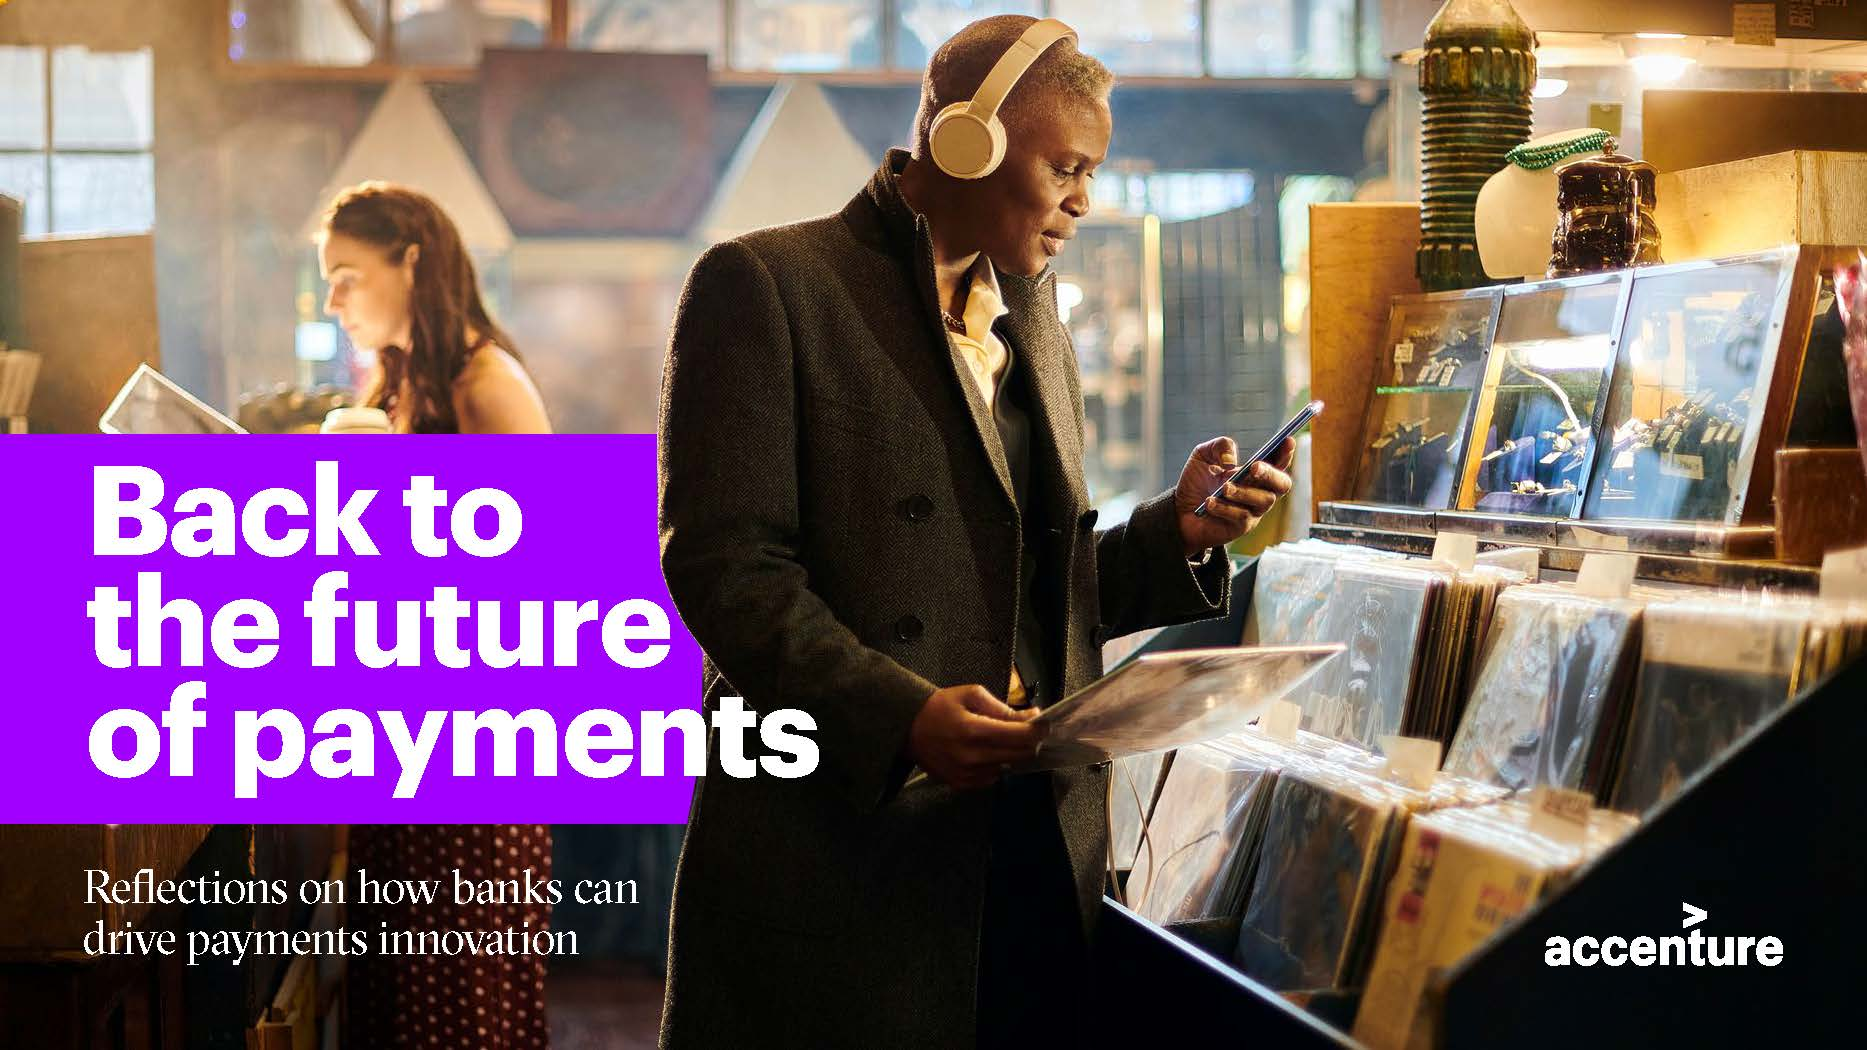 Back to the future of payments